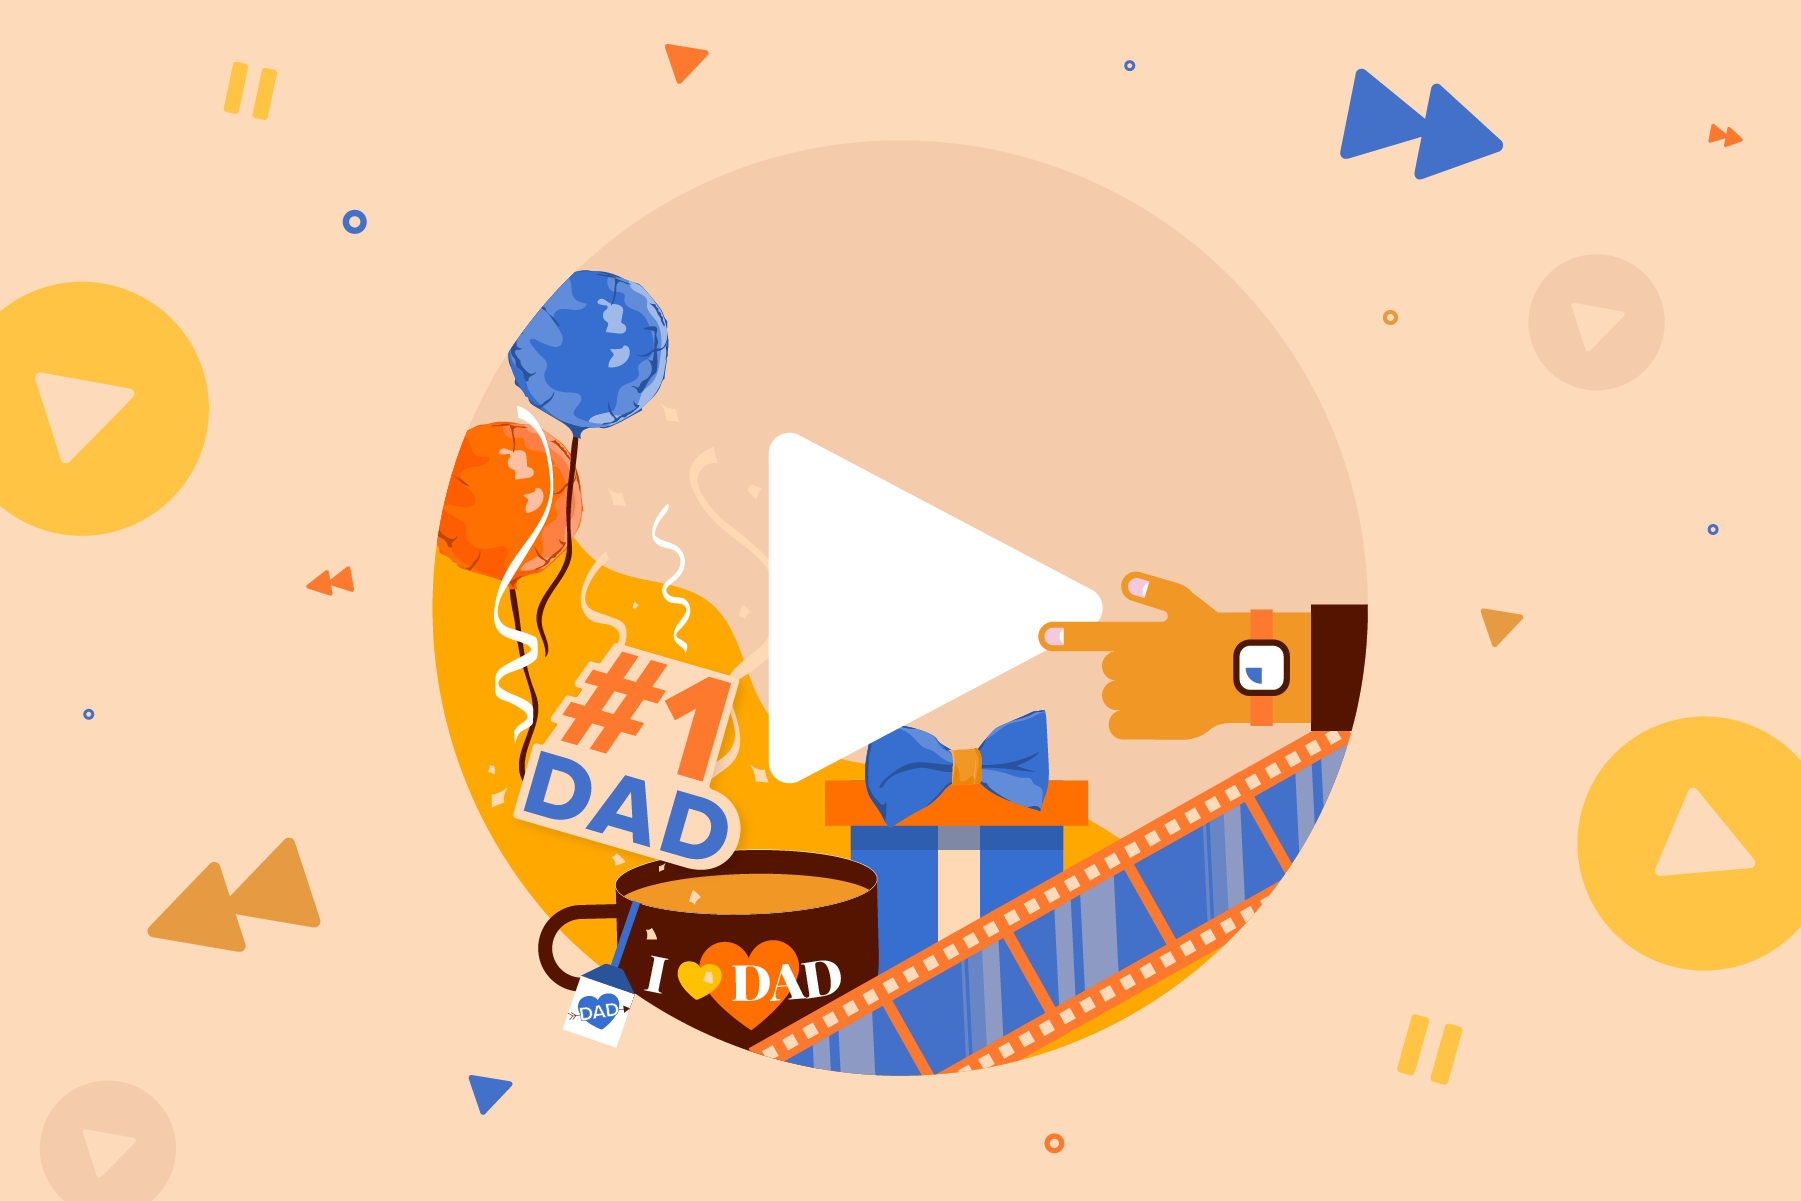 2021-05 15-Creative-Fathers-Day-Video-Ideas Blog image